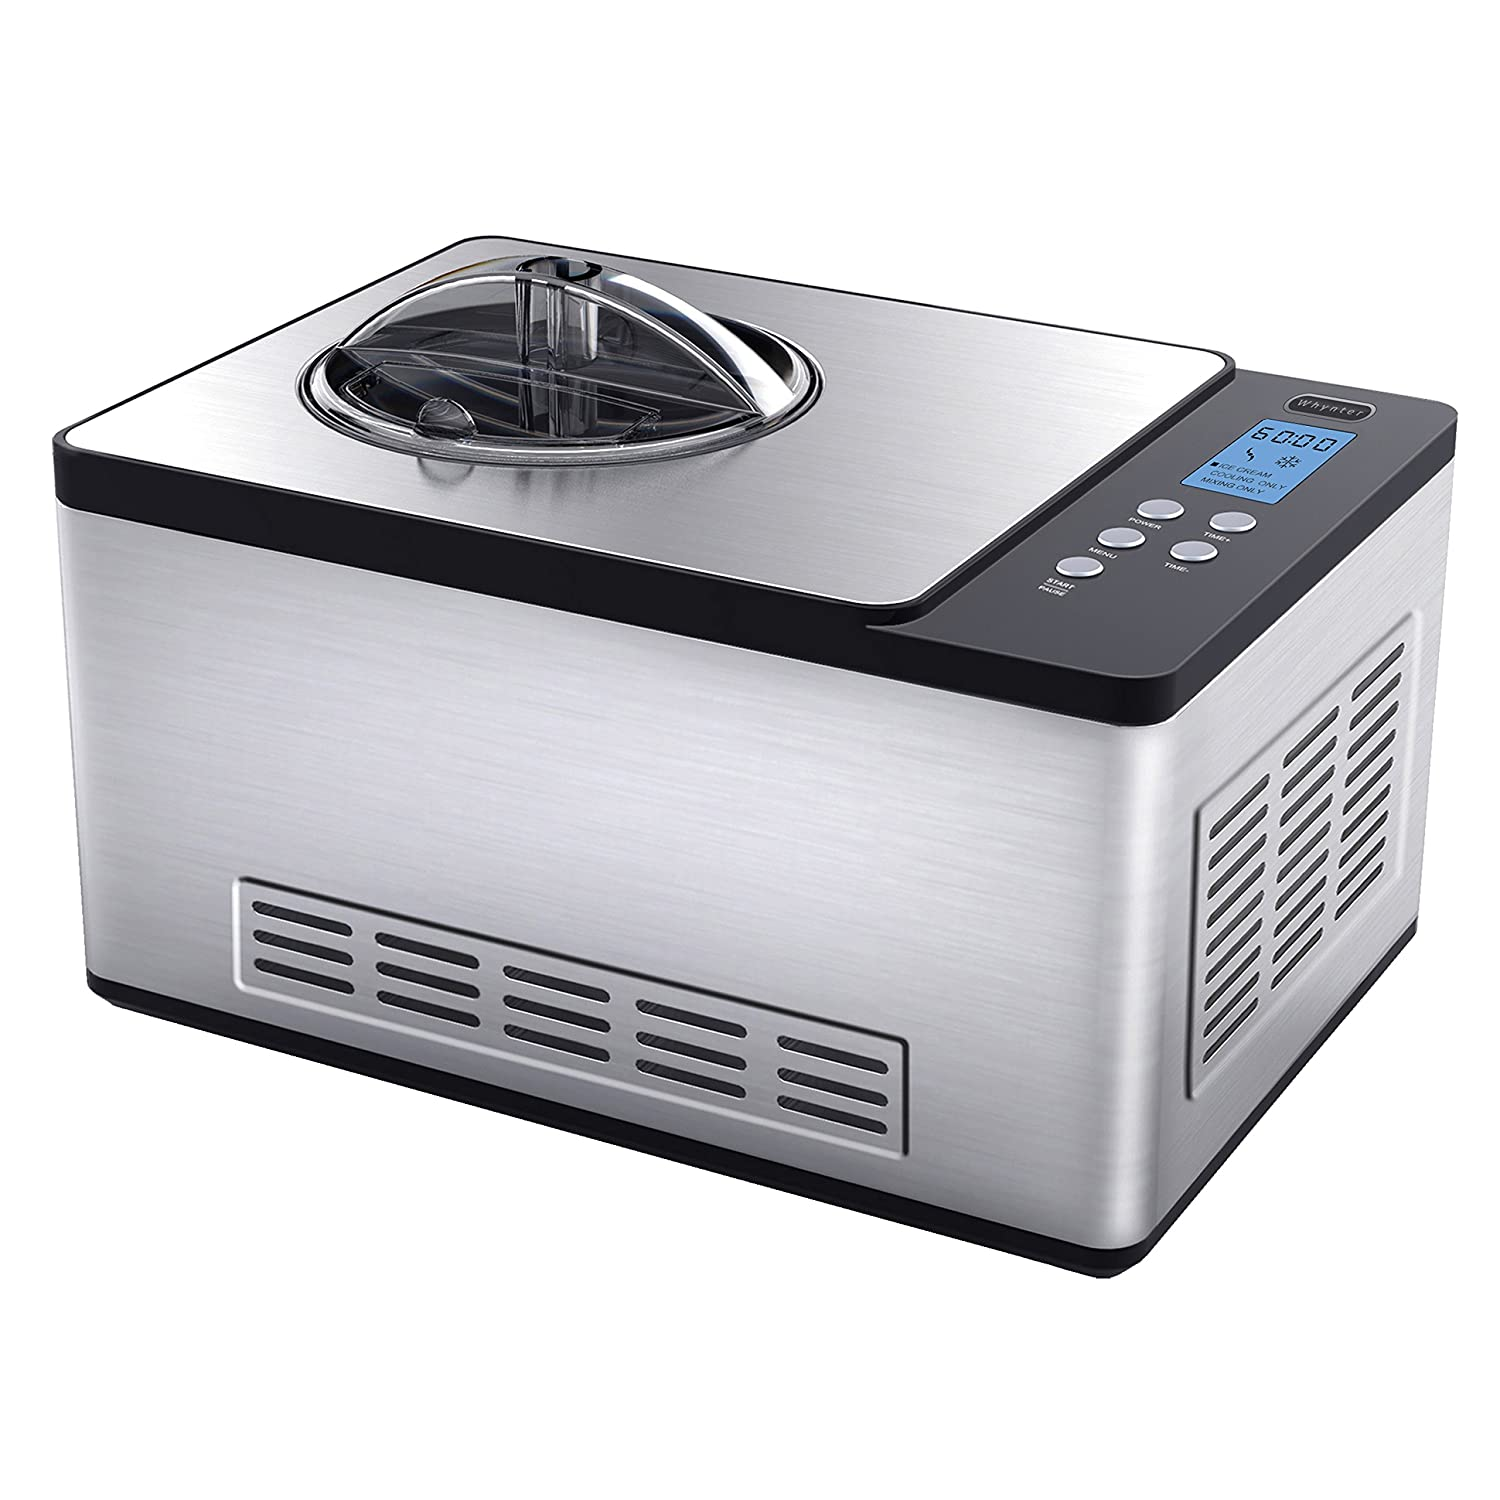 Whynter ICM-200LS Stainless Steel Ice Cream Maker, 2.1-Quart Review